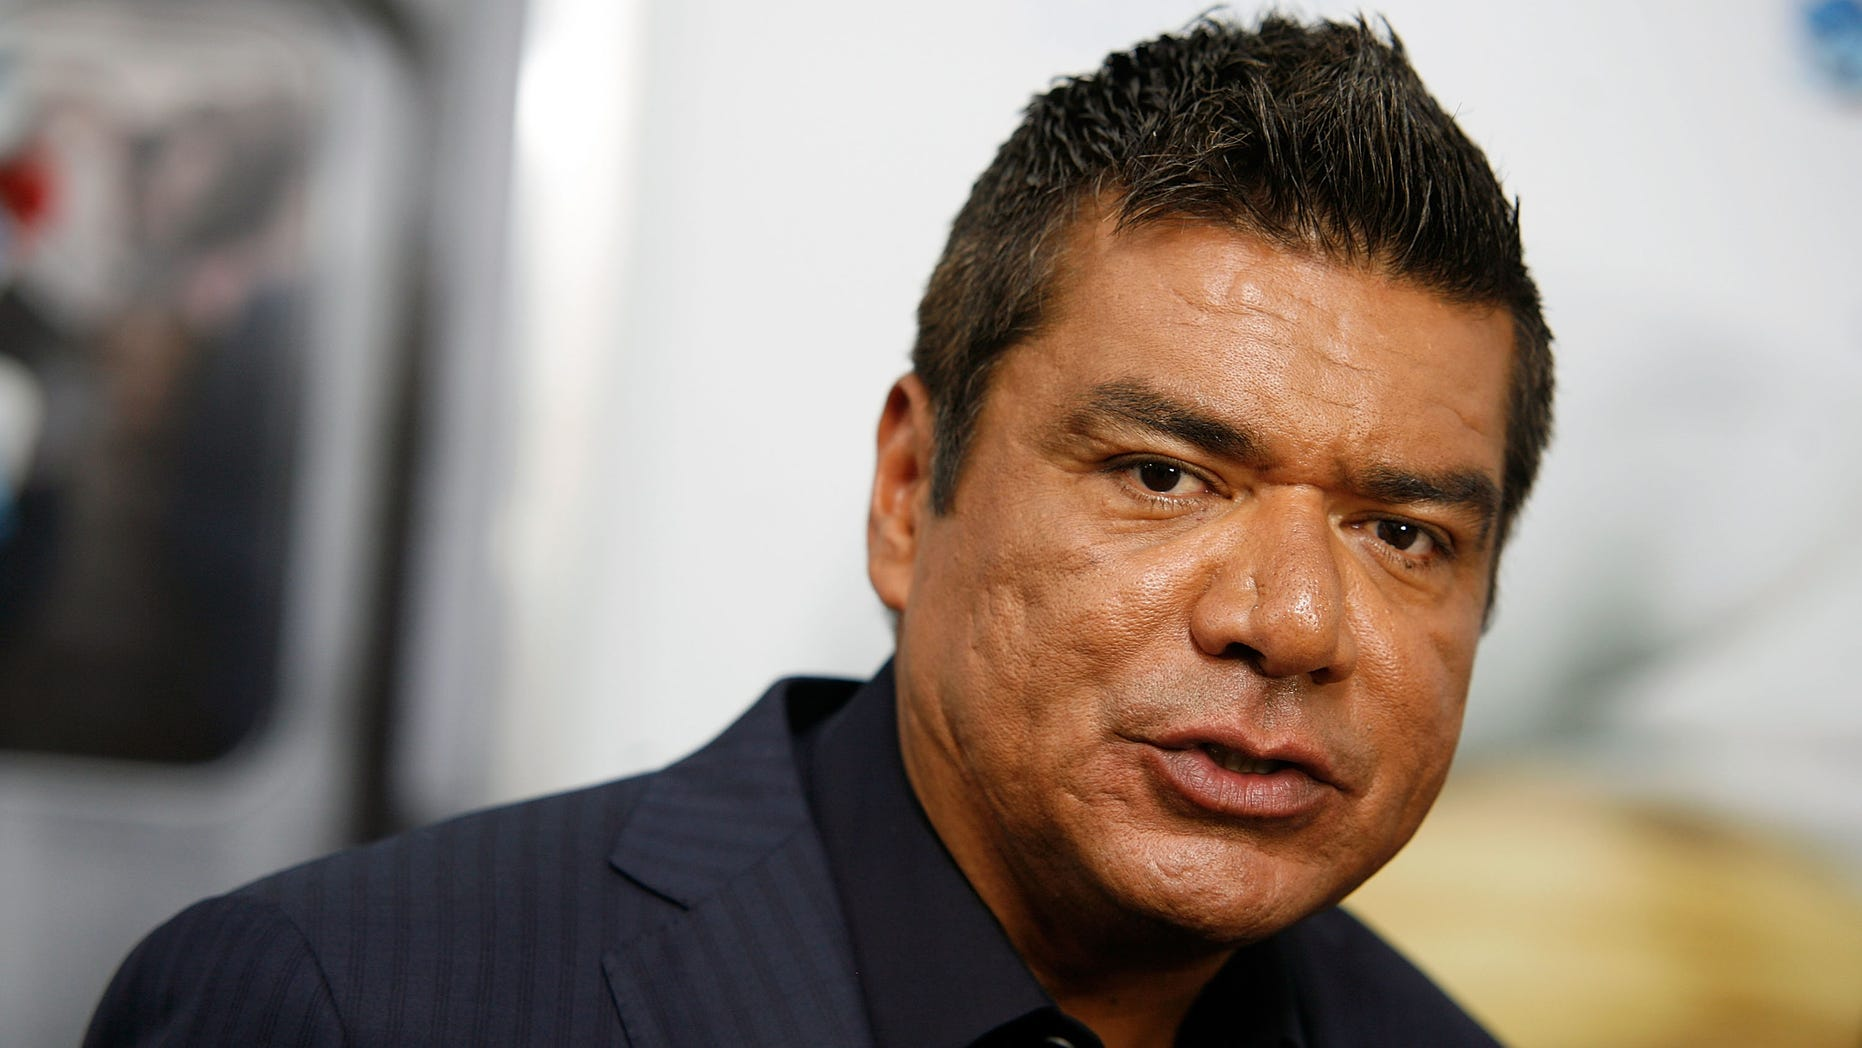 George Lopez Gets in Brawl With Trump Supporter At Hooters